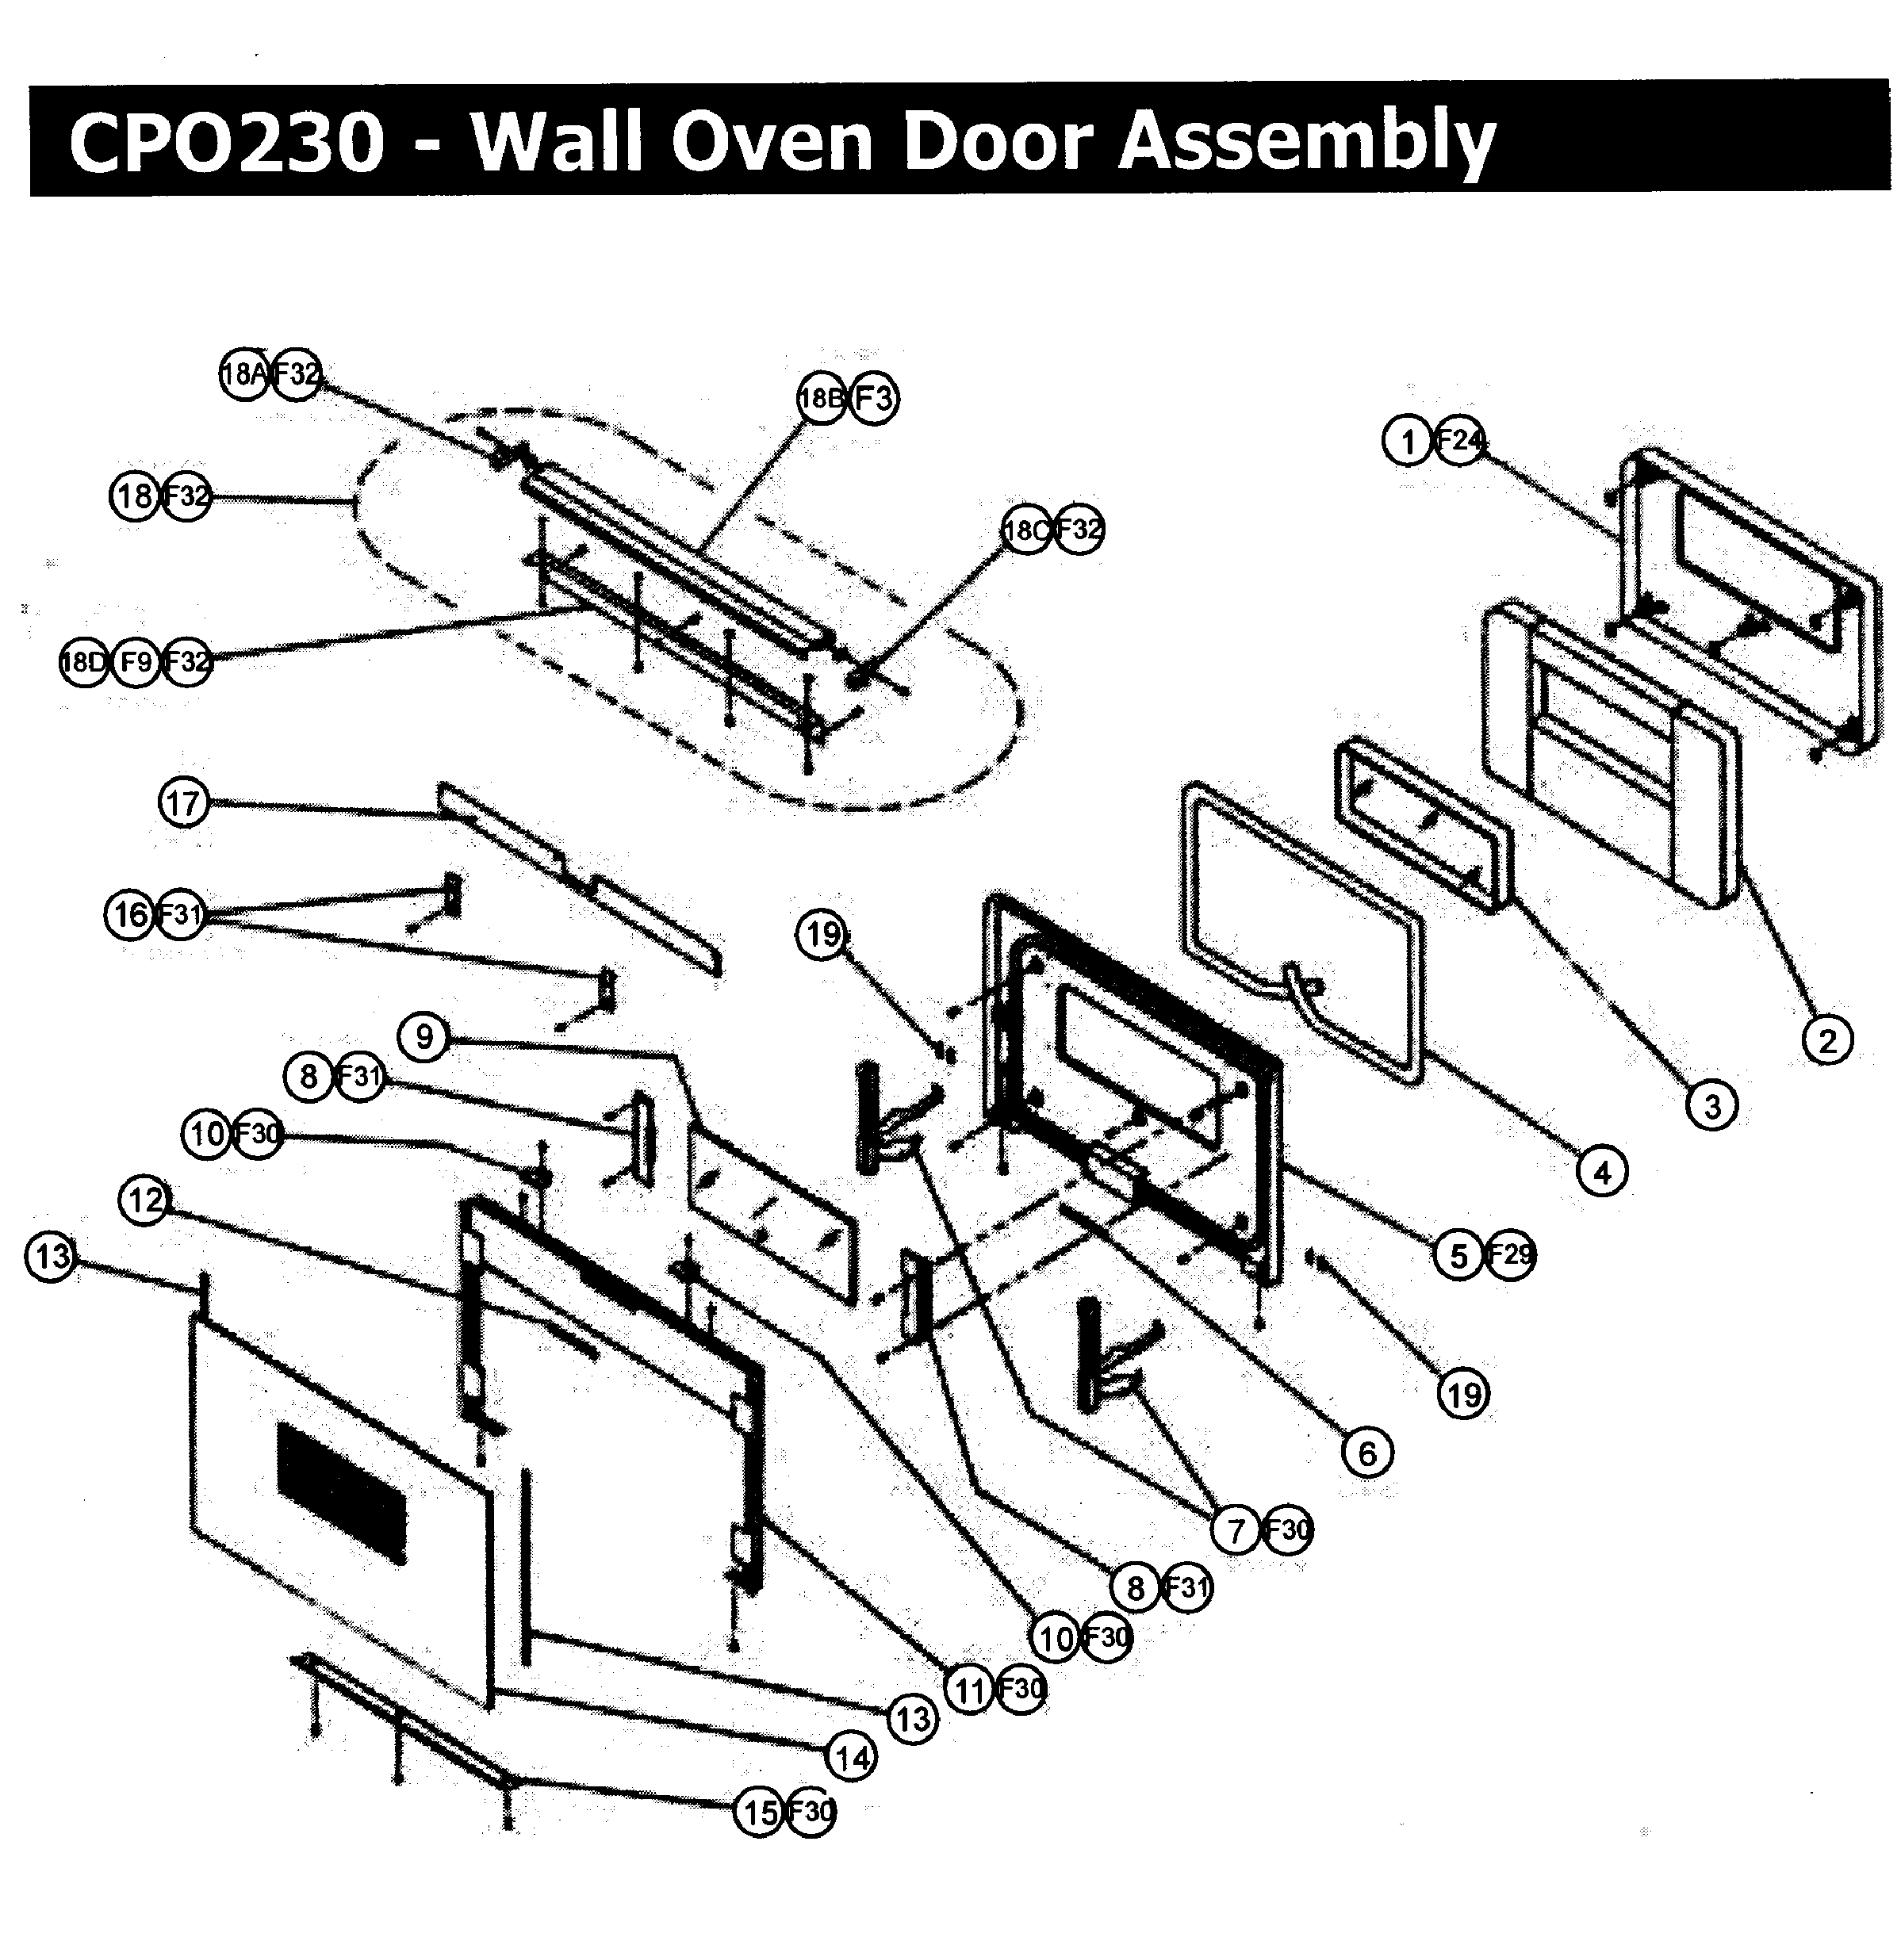 wiring diagram for dacor oven wiring diagram Maytag Stove Parts Diagram dacor cpo230 wall oven timer stove clocks and appliance timerscpo230 wall oven door assy parts diagram